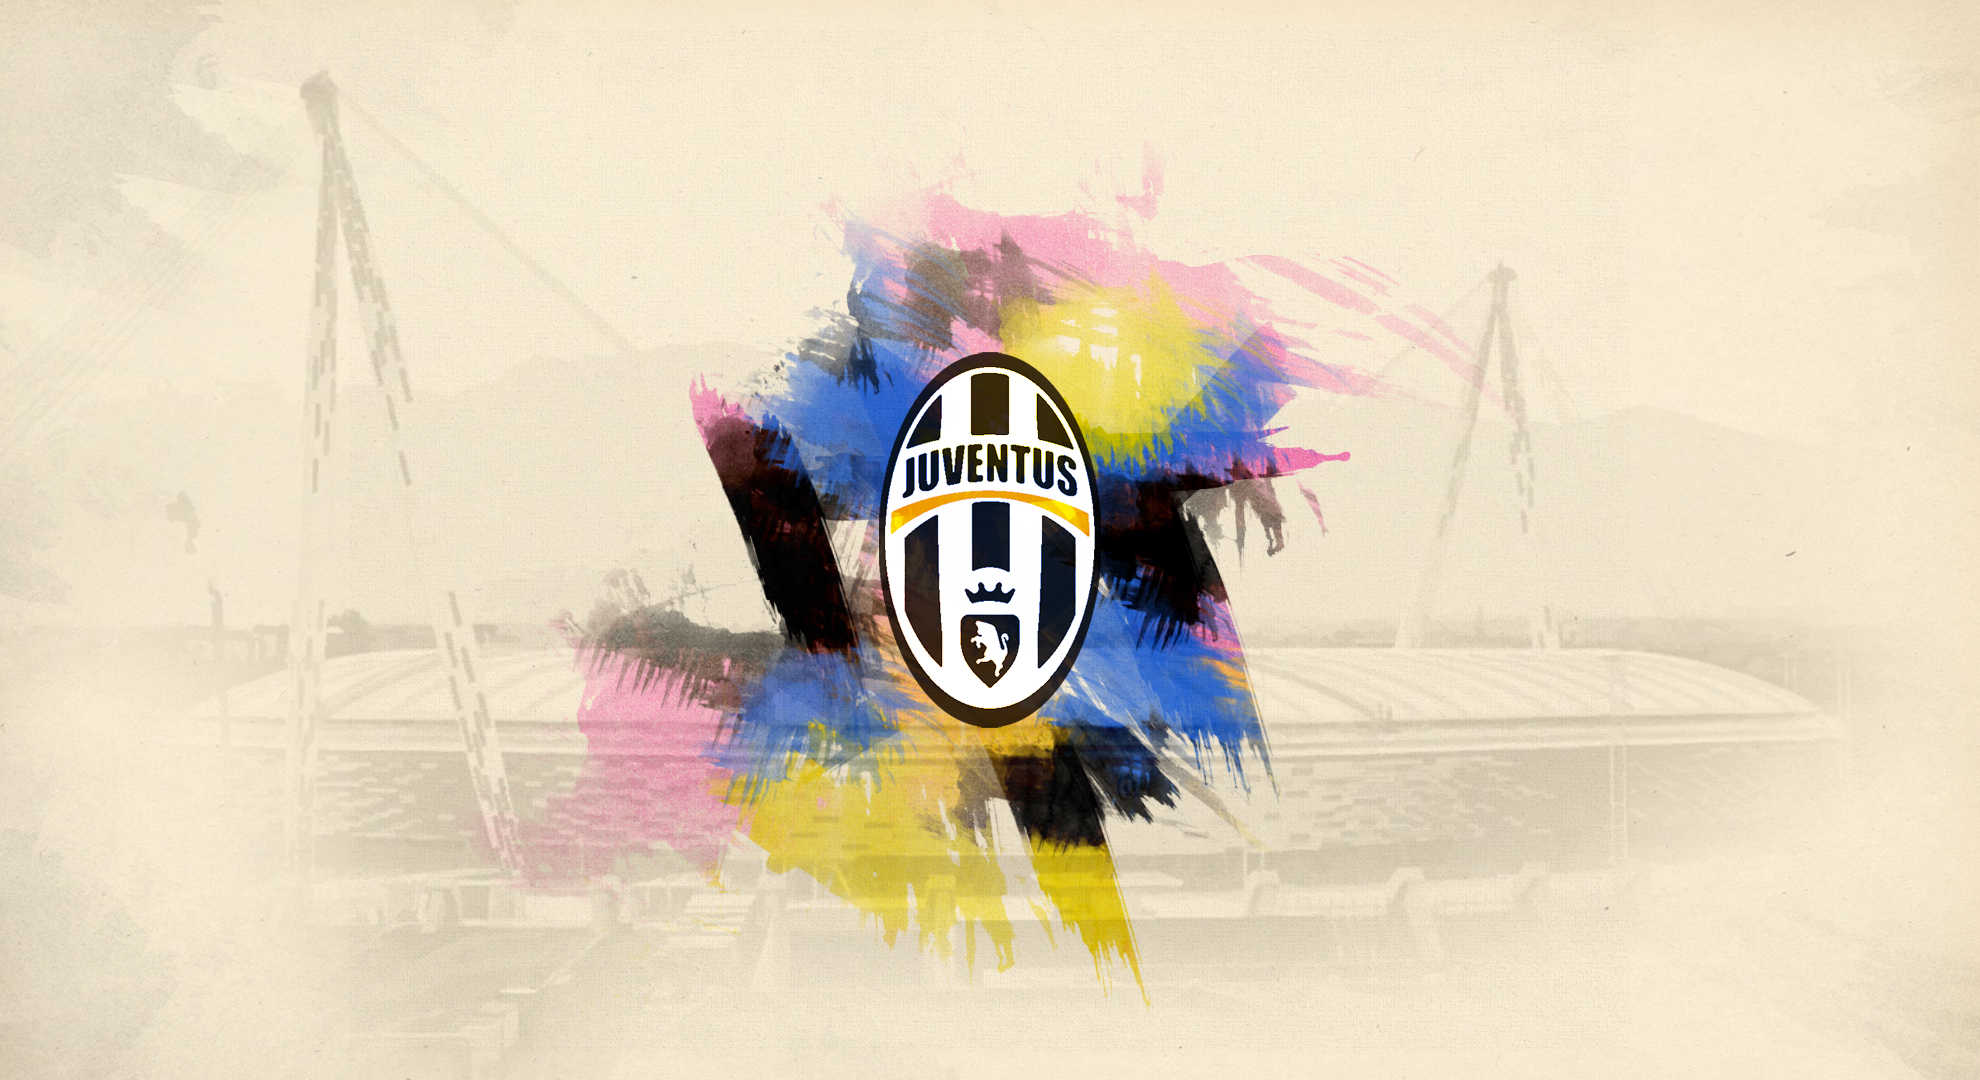 Juventus_Wallpaper1920x1080_B